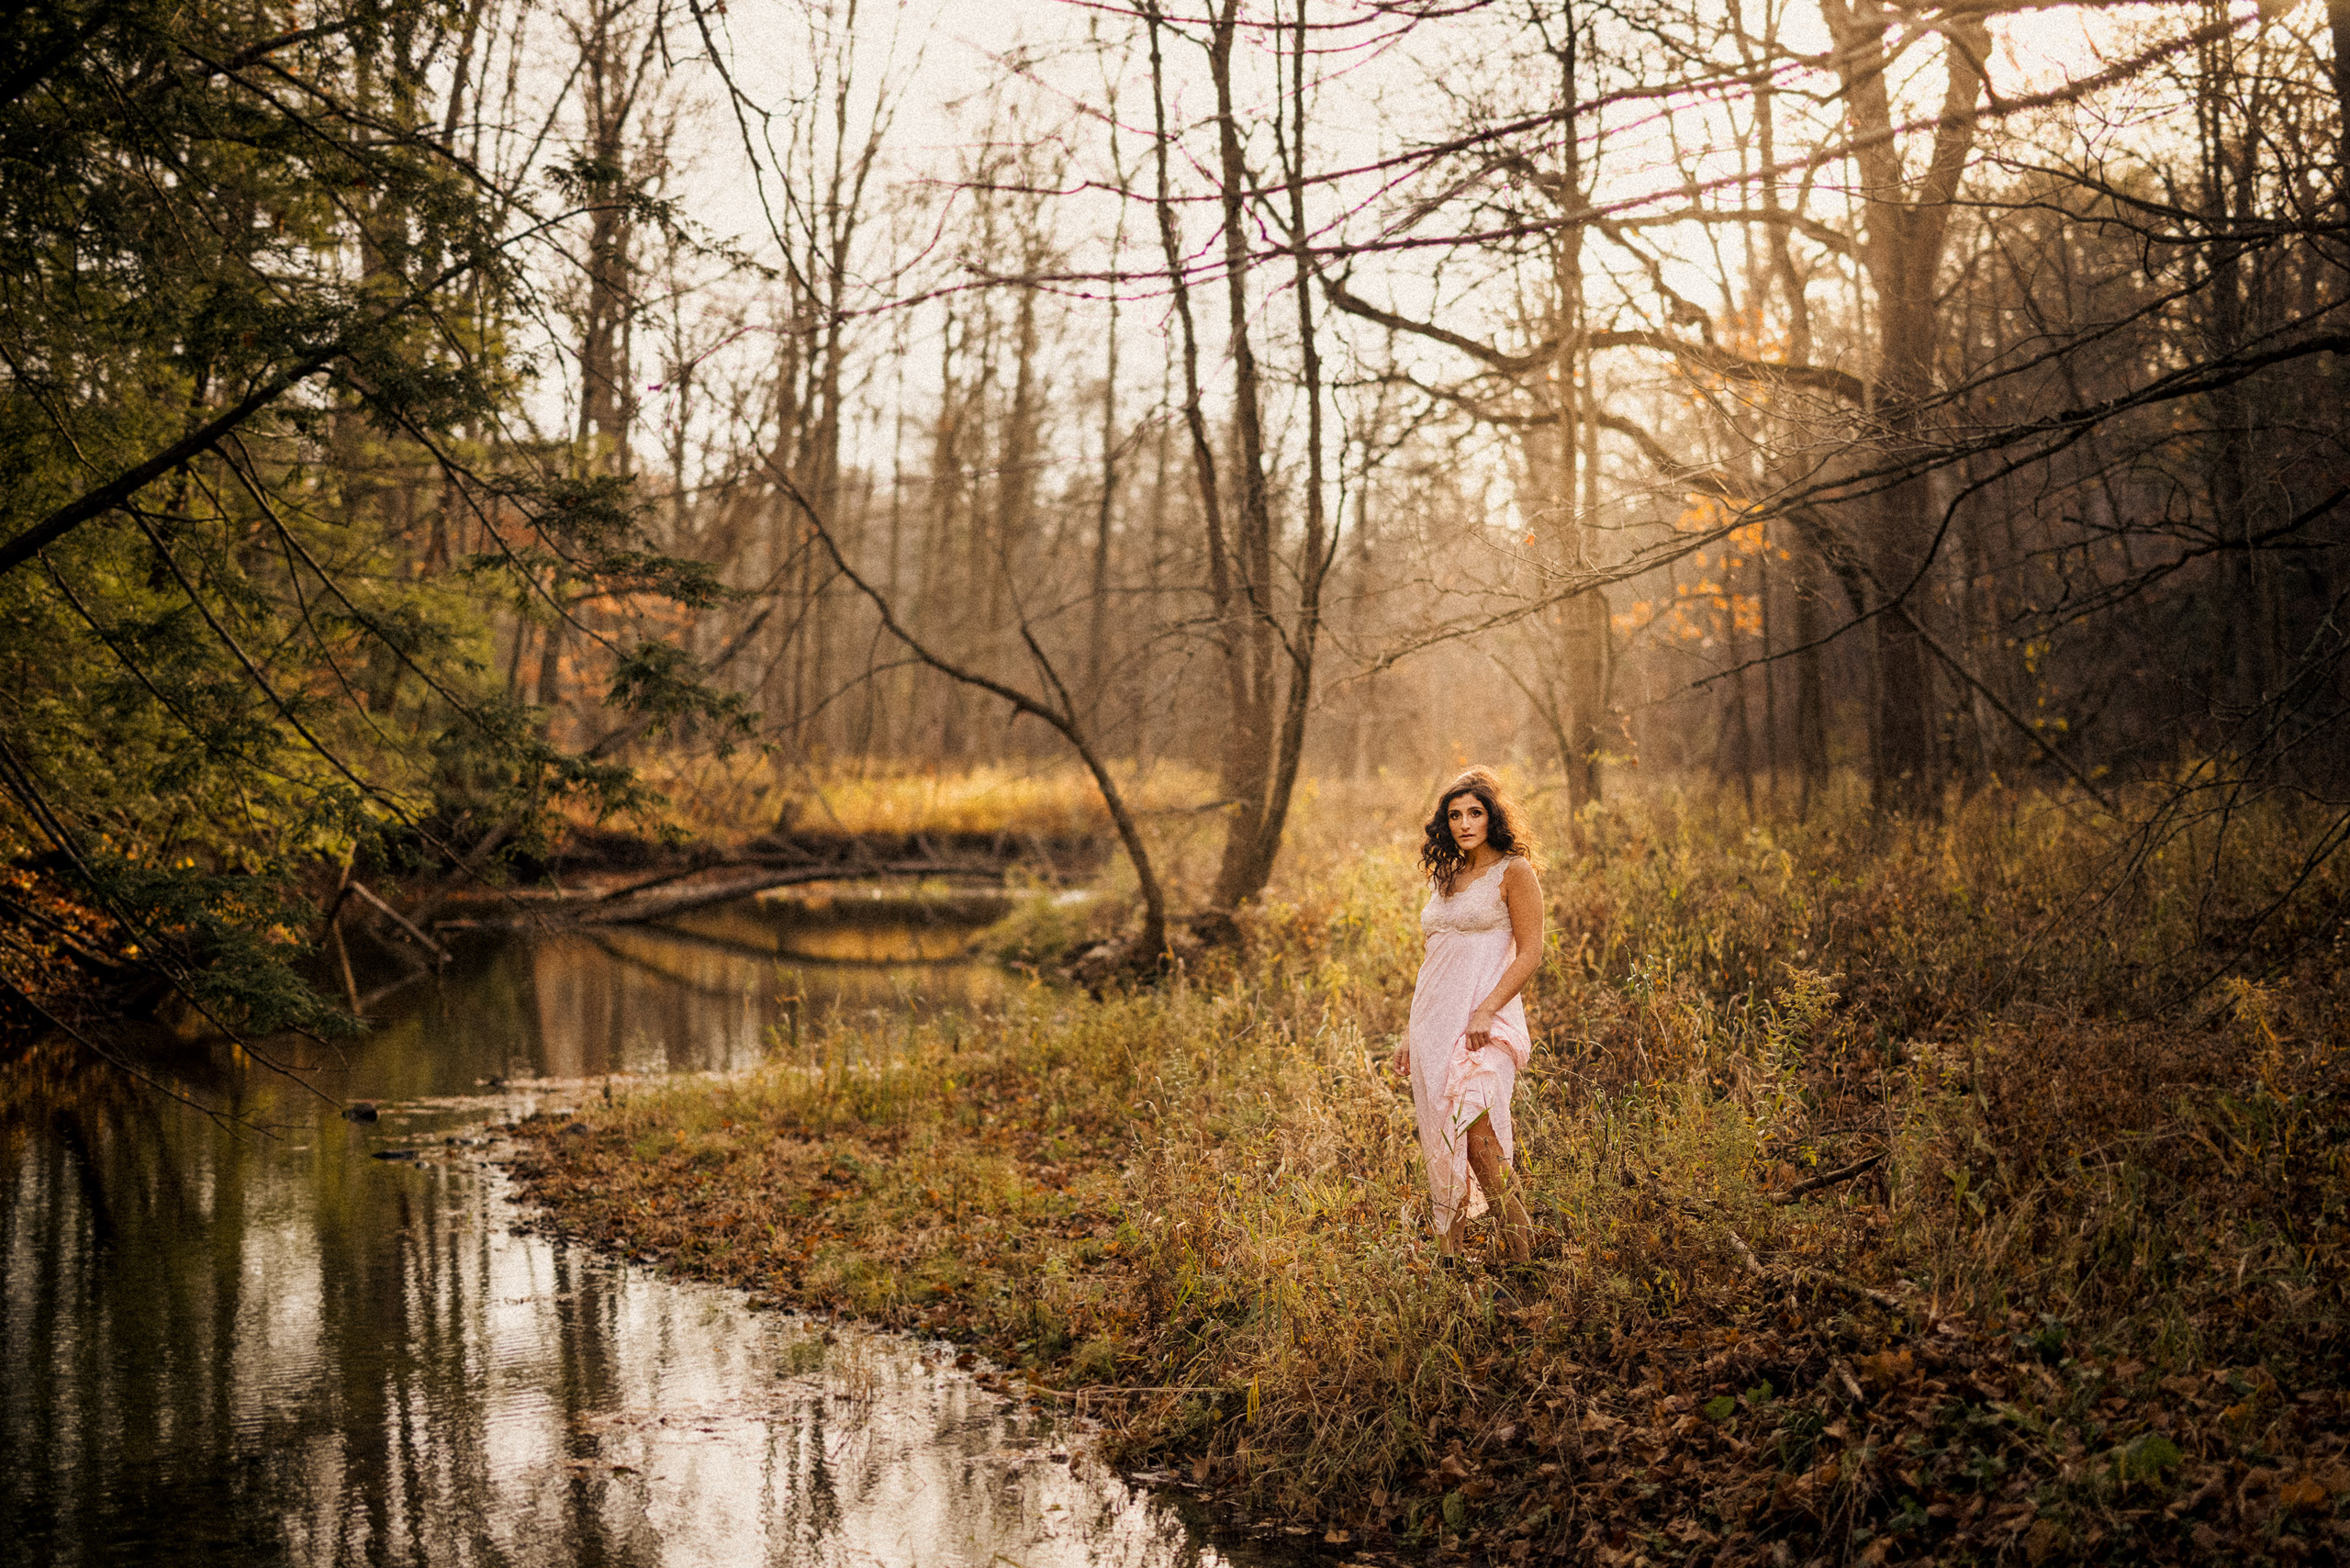 girl pink nighty boudoir outdoor fall autum leaves river afterglow